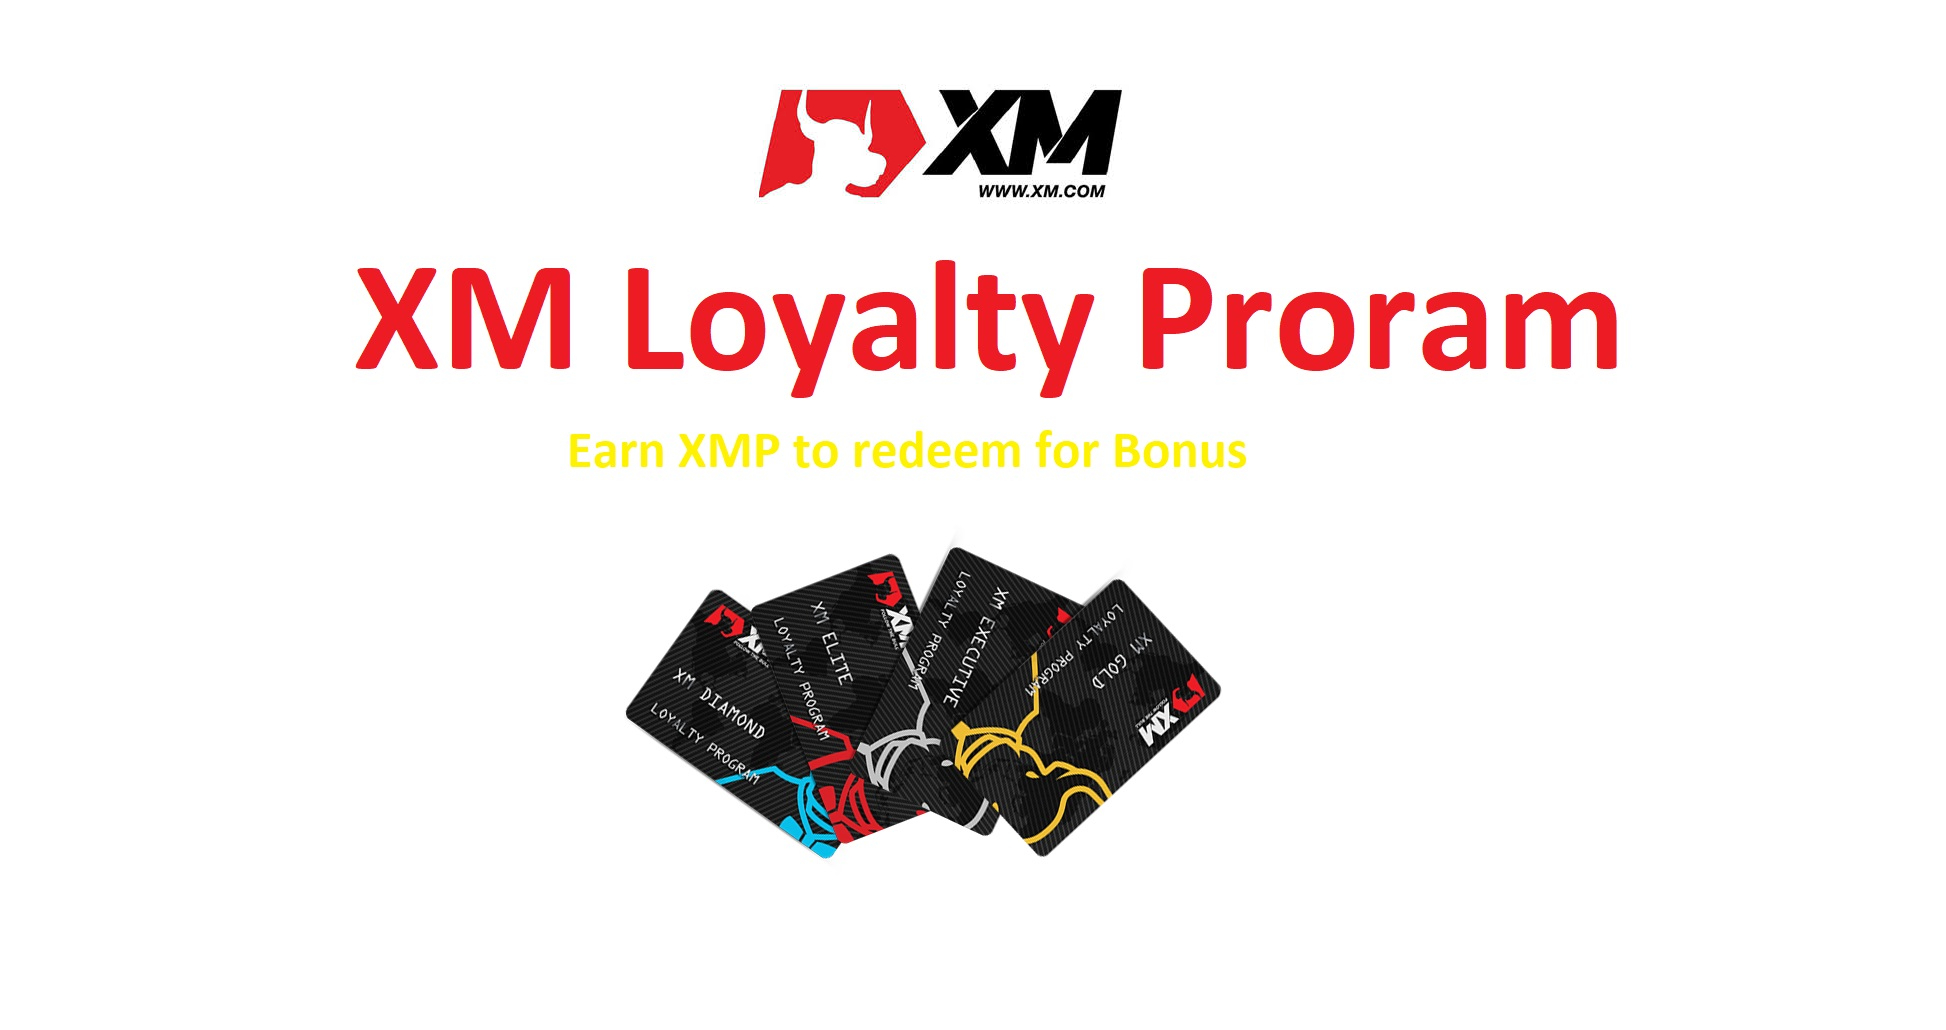 XM Loyalty Program - Cashback Rebate